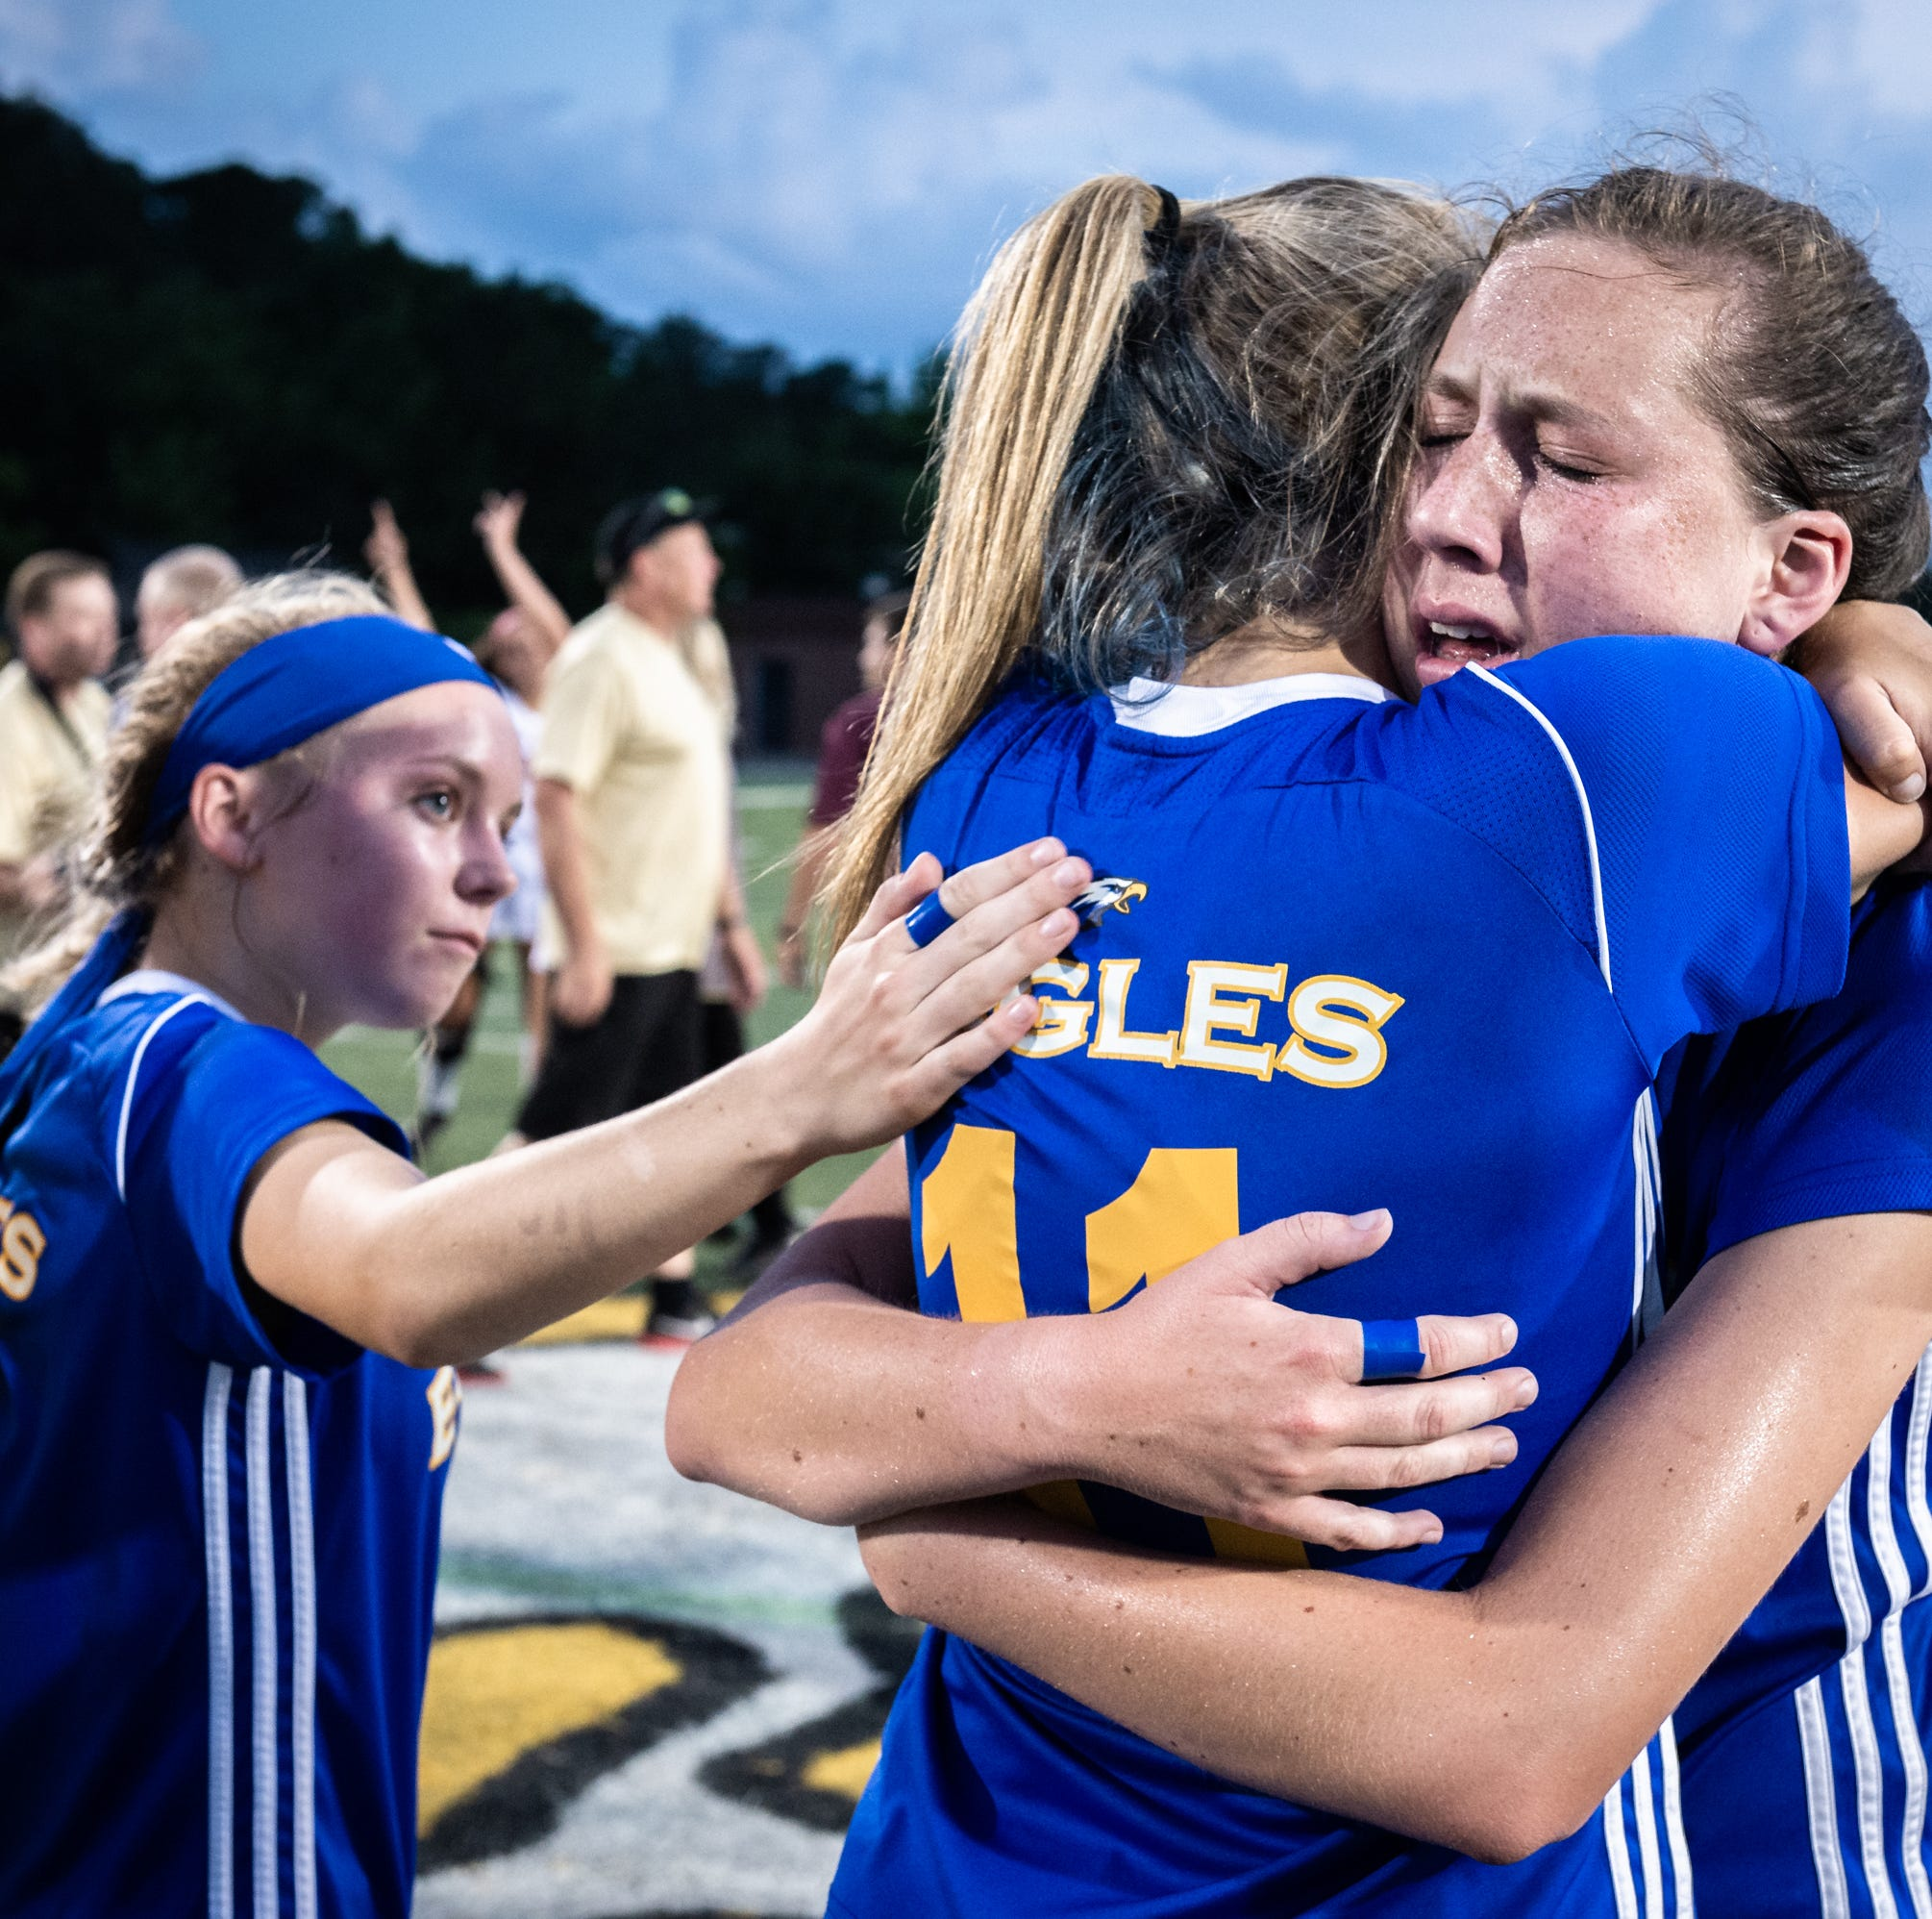 South Aiken outruns Eastside in girls soccer Class AAAA state championship match